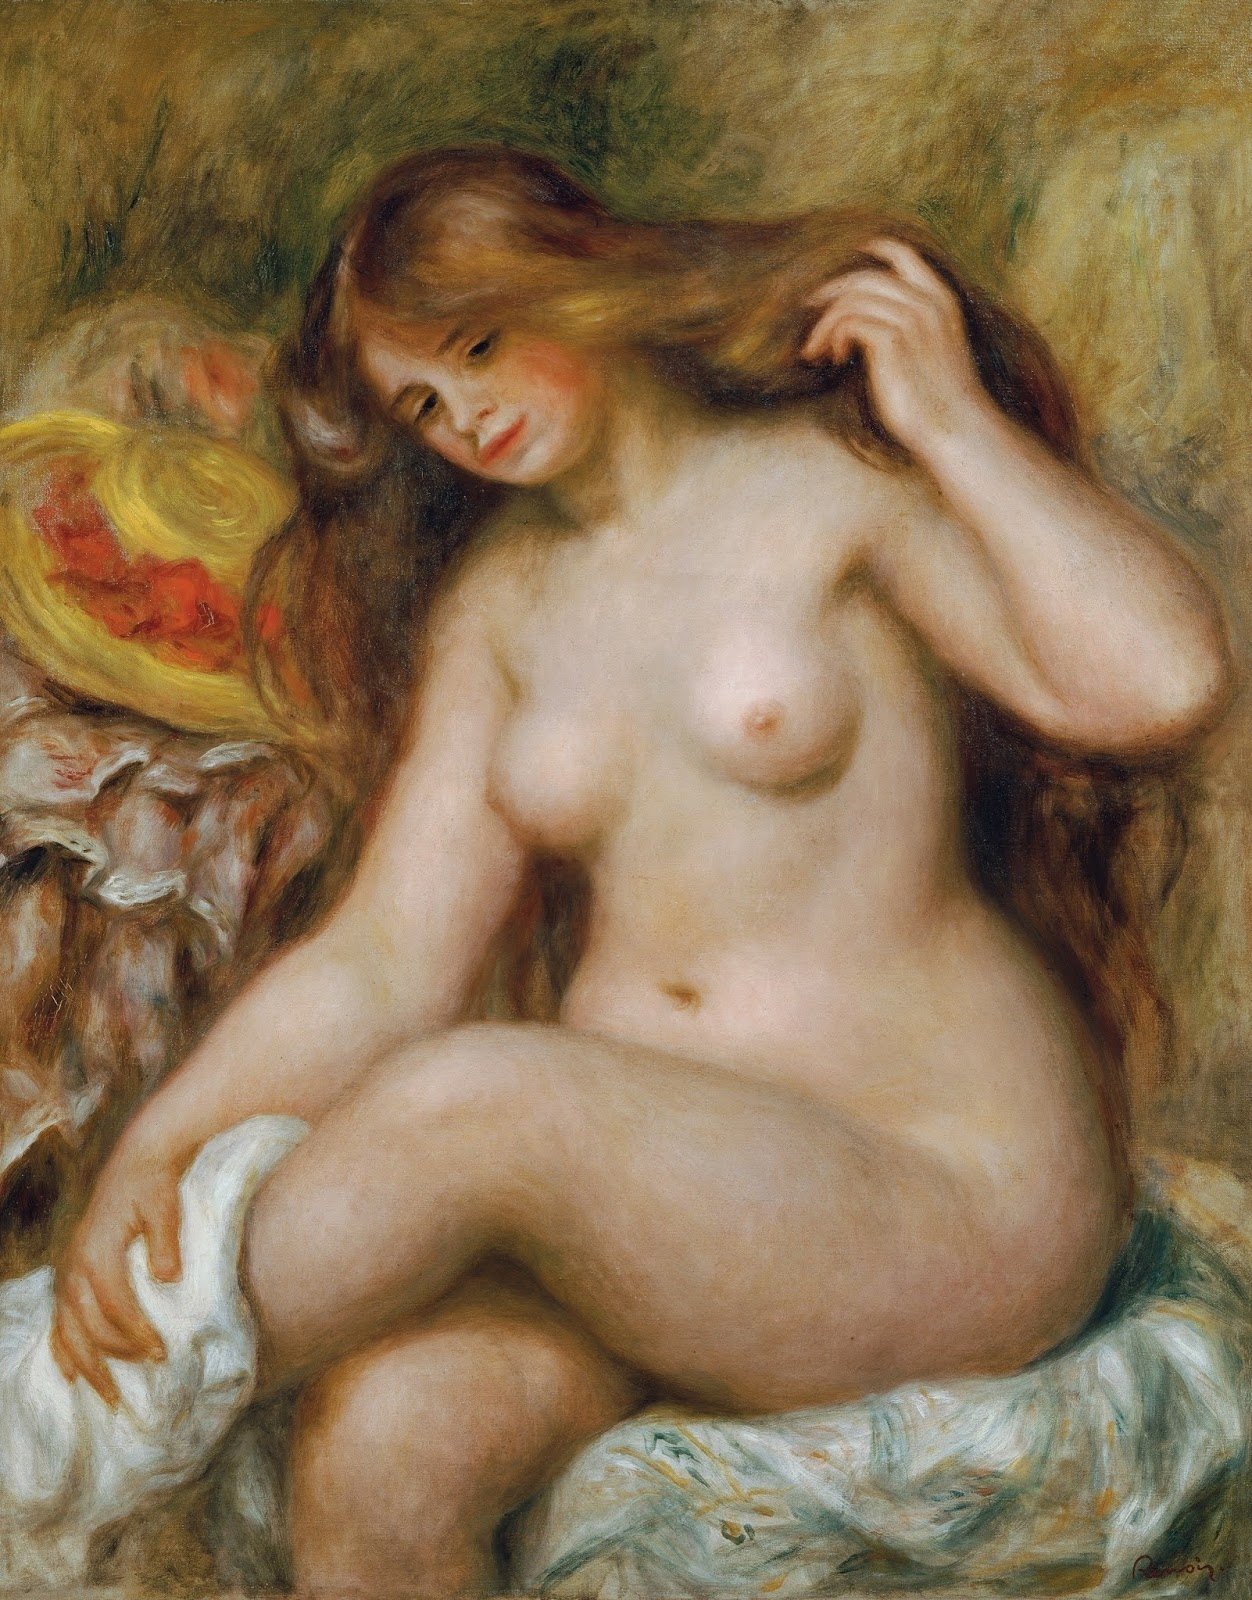 The ethics of the female nude confluence